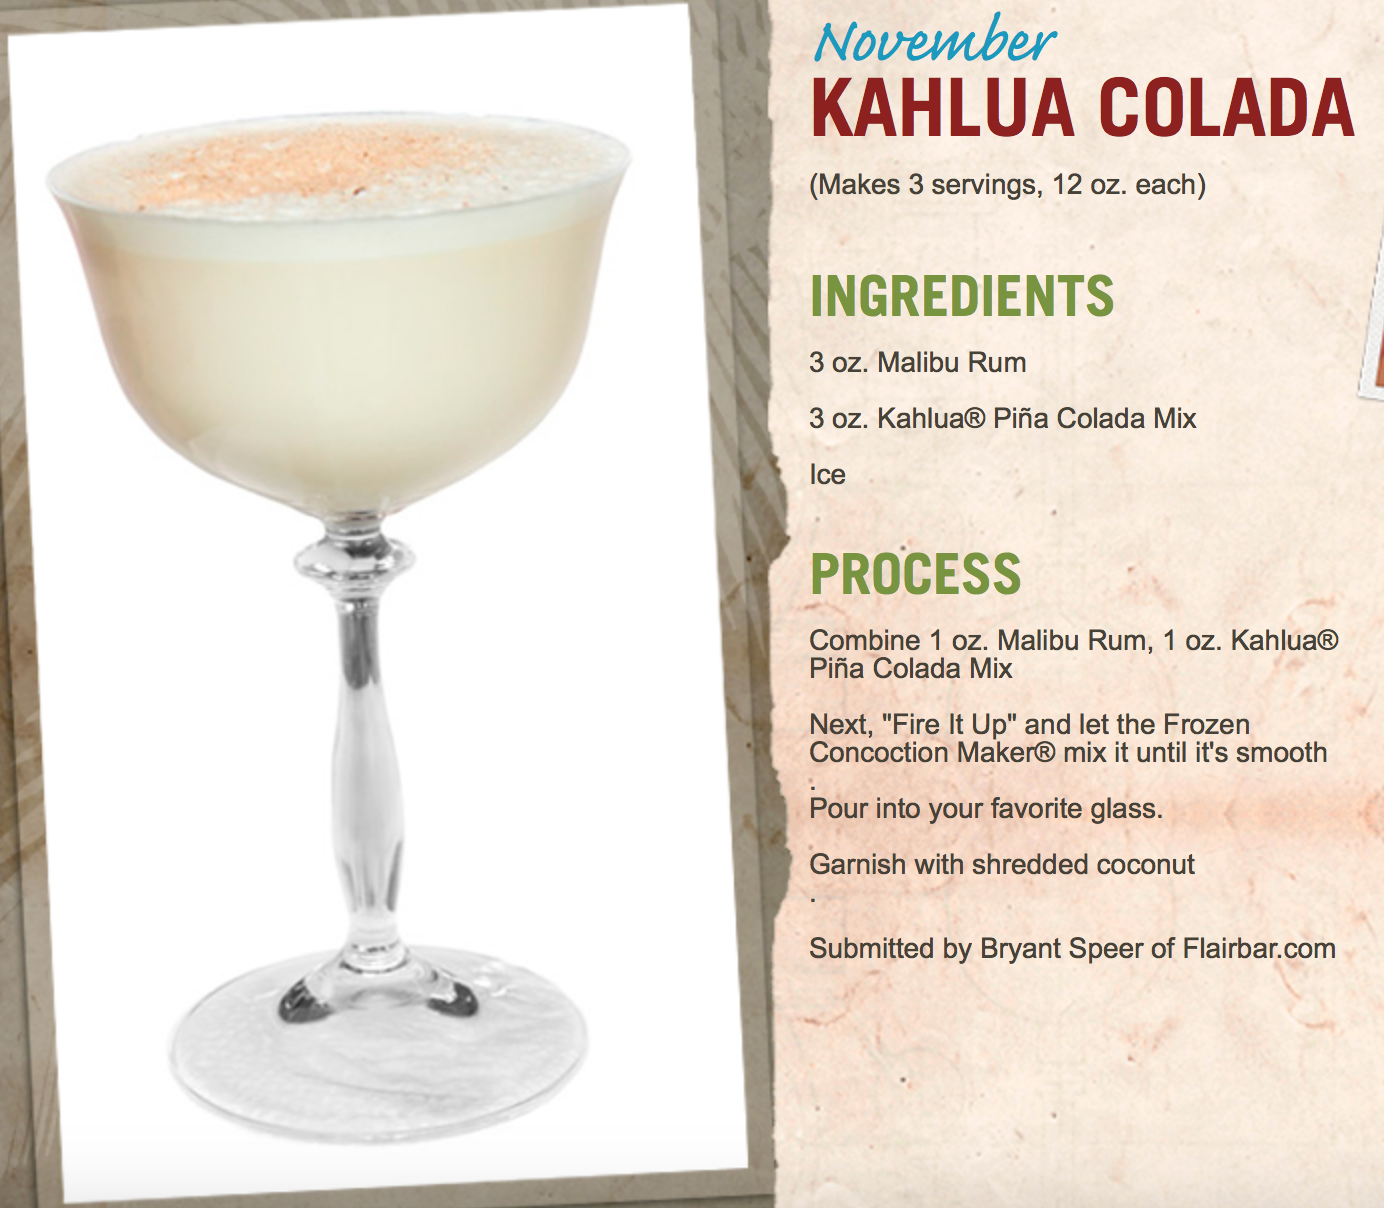 This Kailua Colada Is Delicious For A Sunday